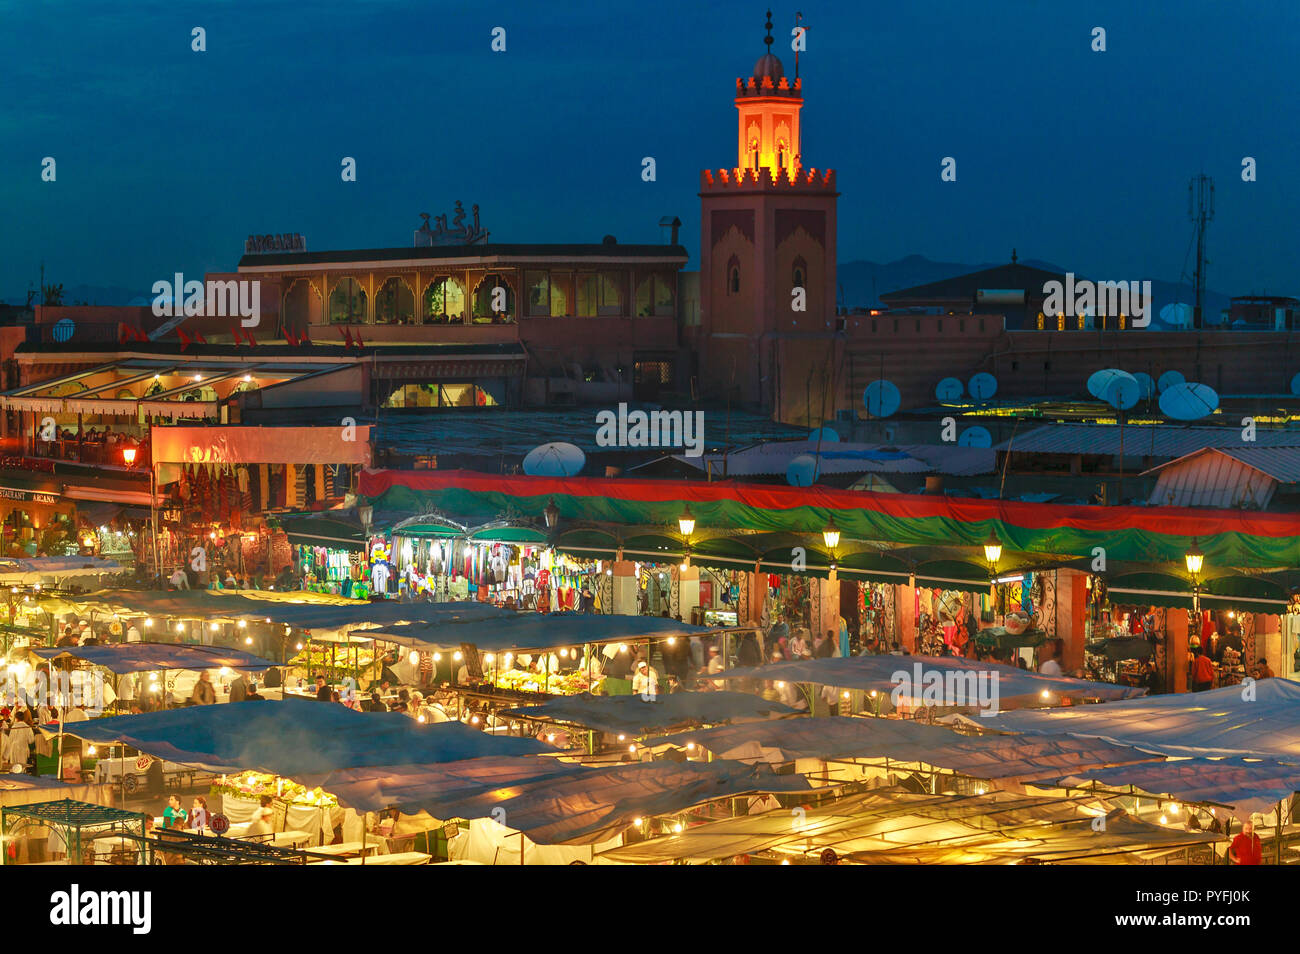 MOROCCO MARRAKECH JEMAA EL FNA THE SQUARE FOOD MARKET AT NIGHT WITH MOSQUE TOWER - Stock Image